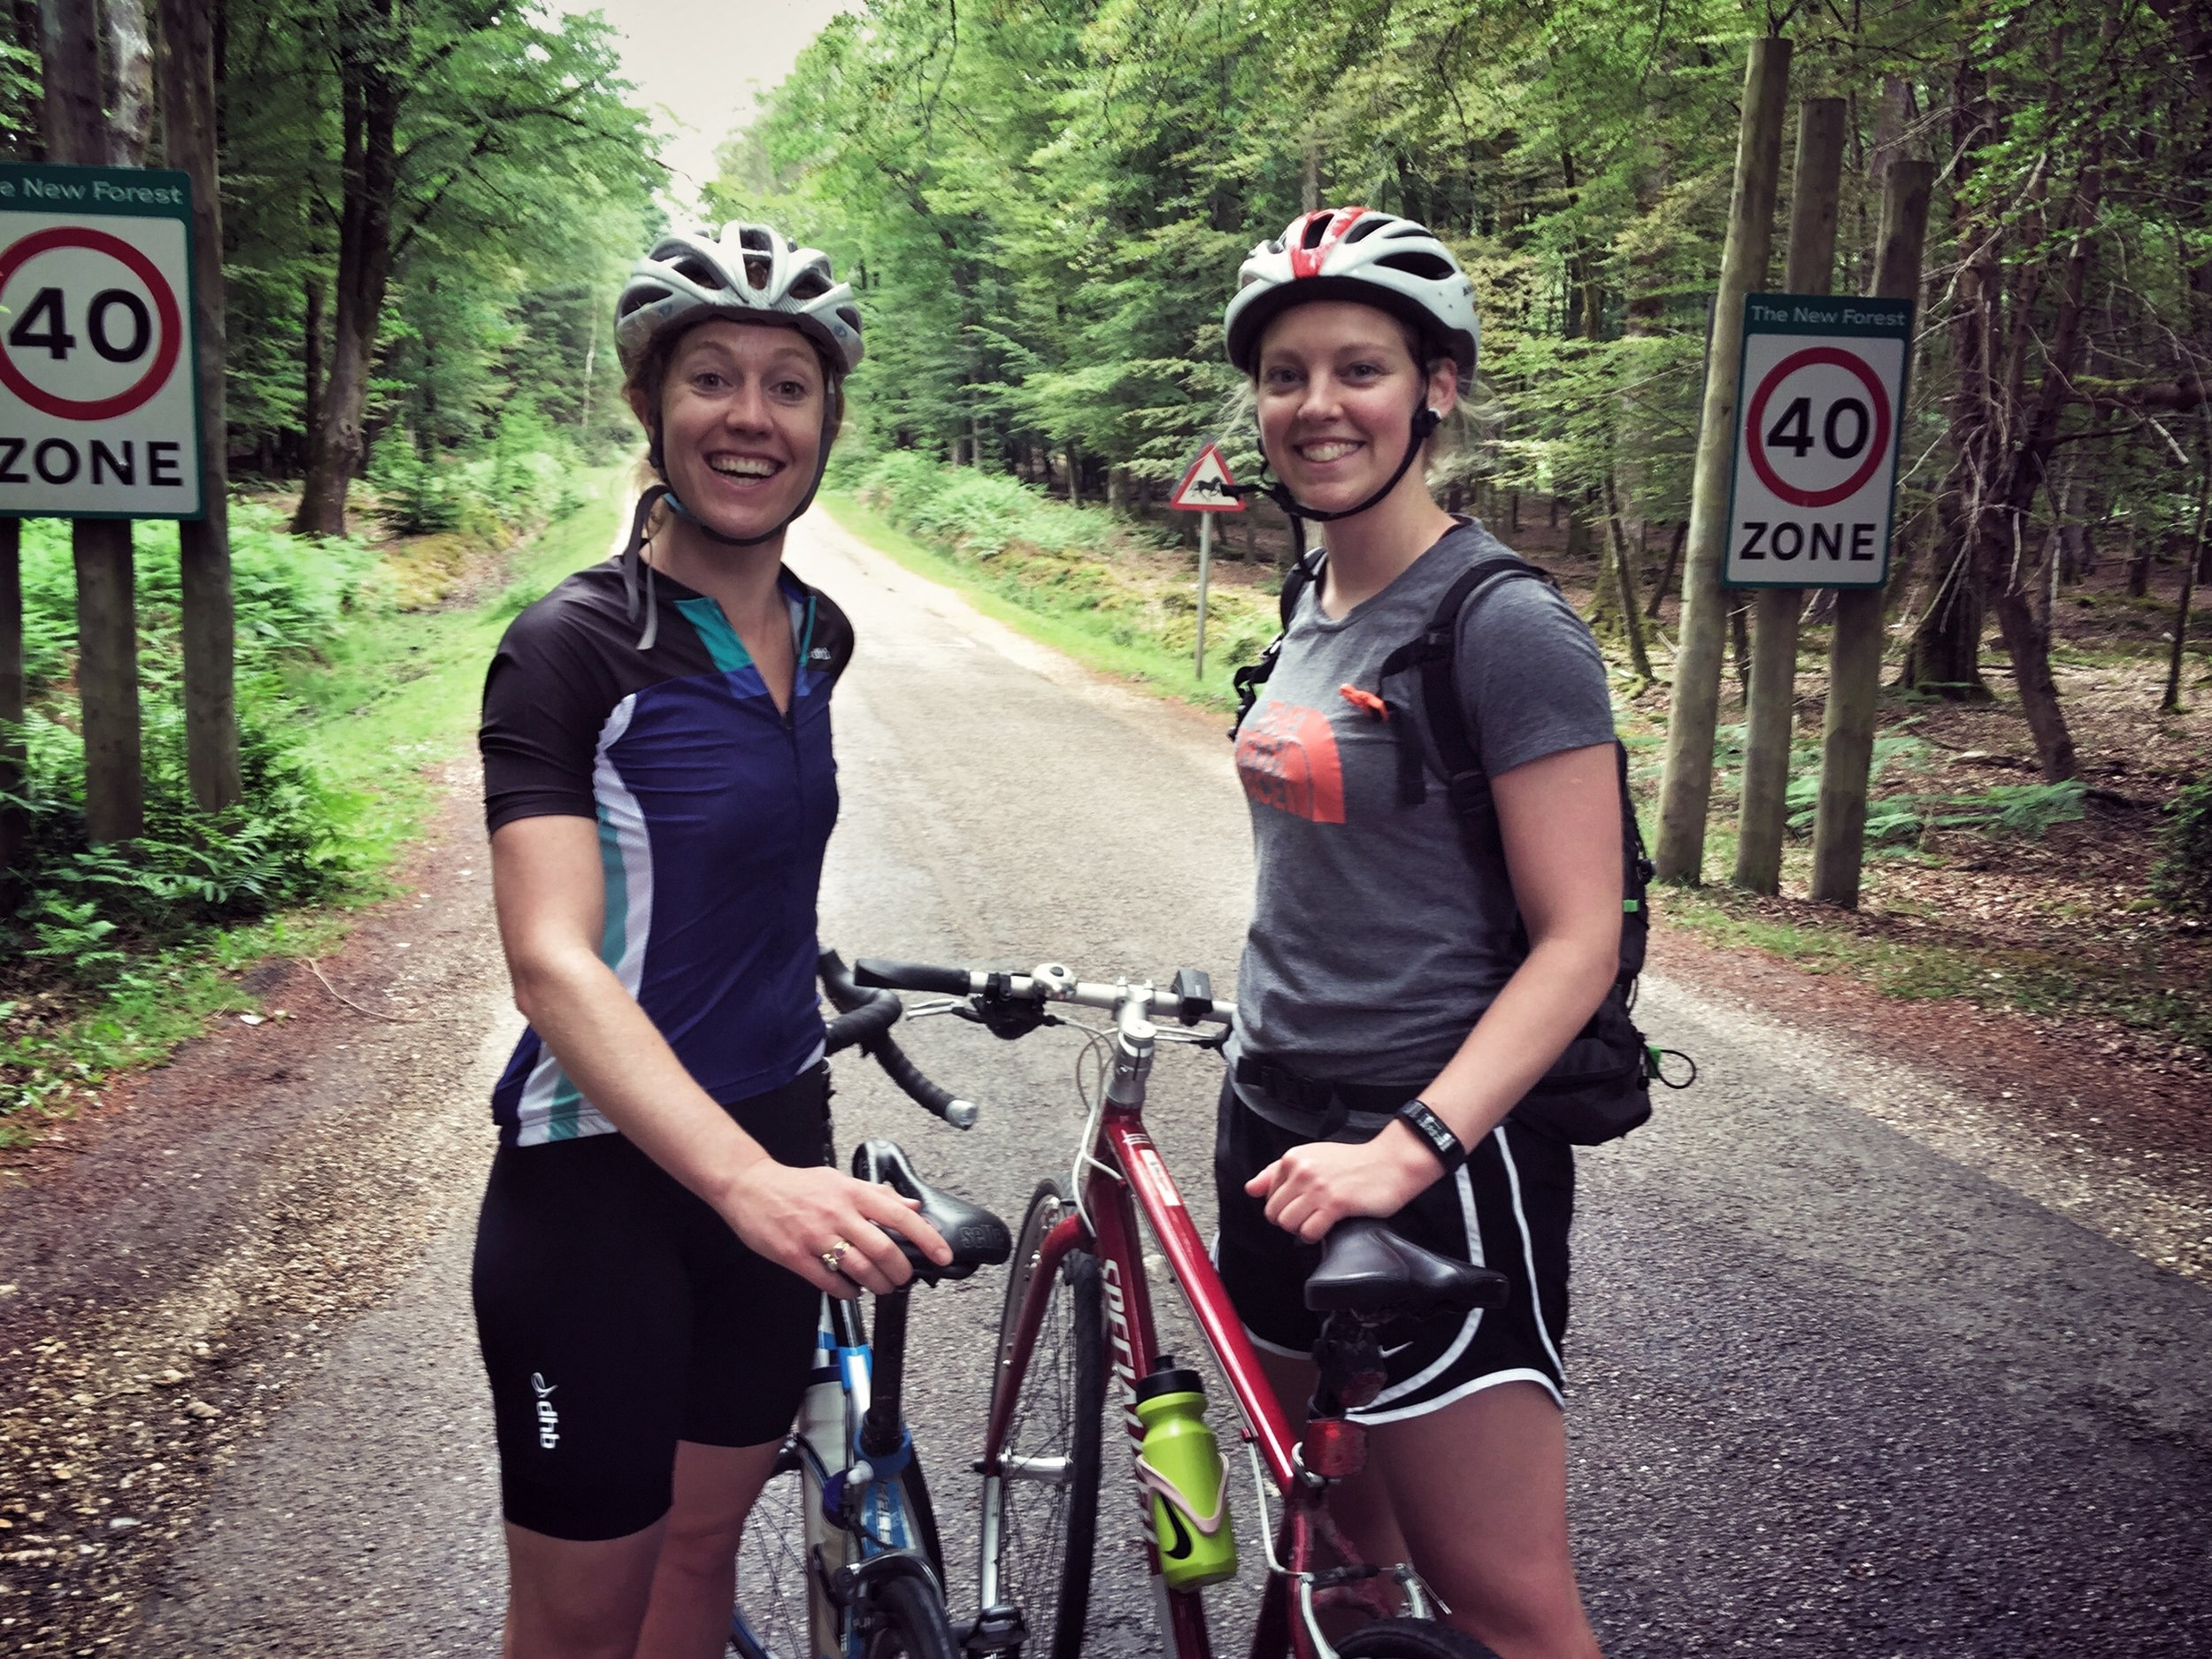 Saturday trip to cycle in the New Forest